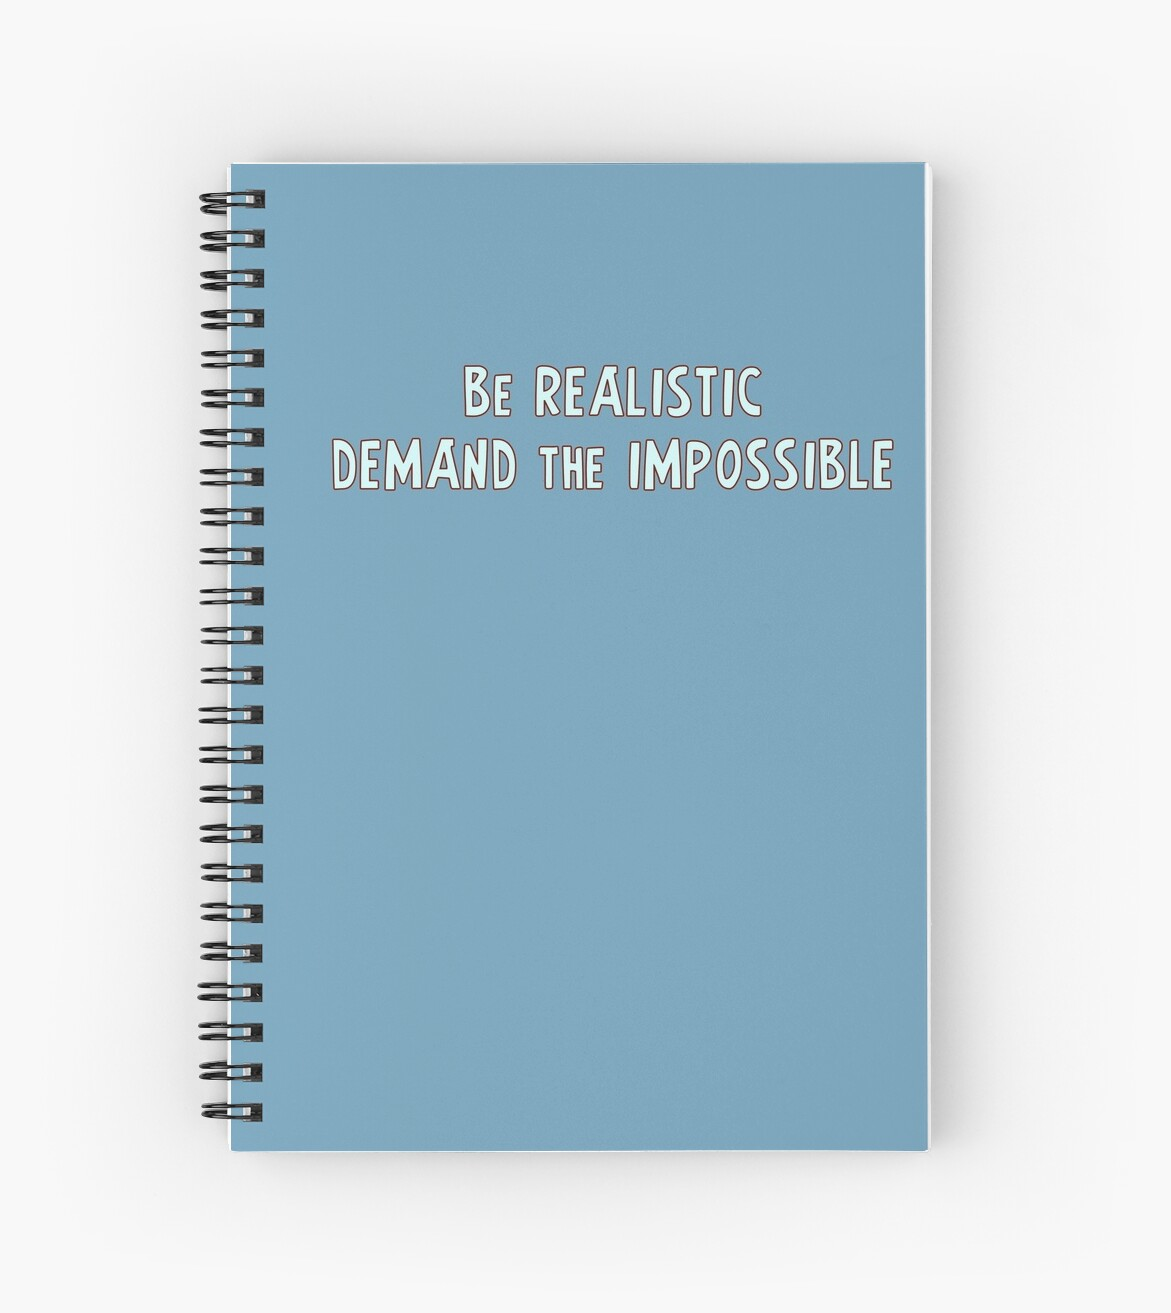 Be realistic, demand the impossible by Dominika Aniola